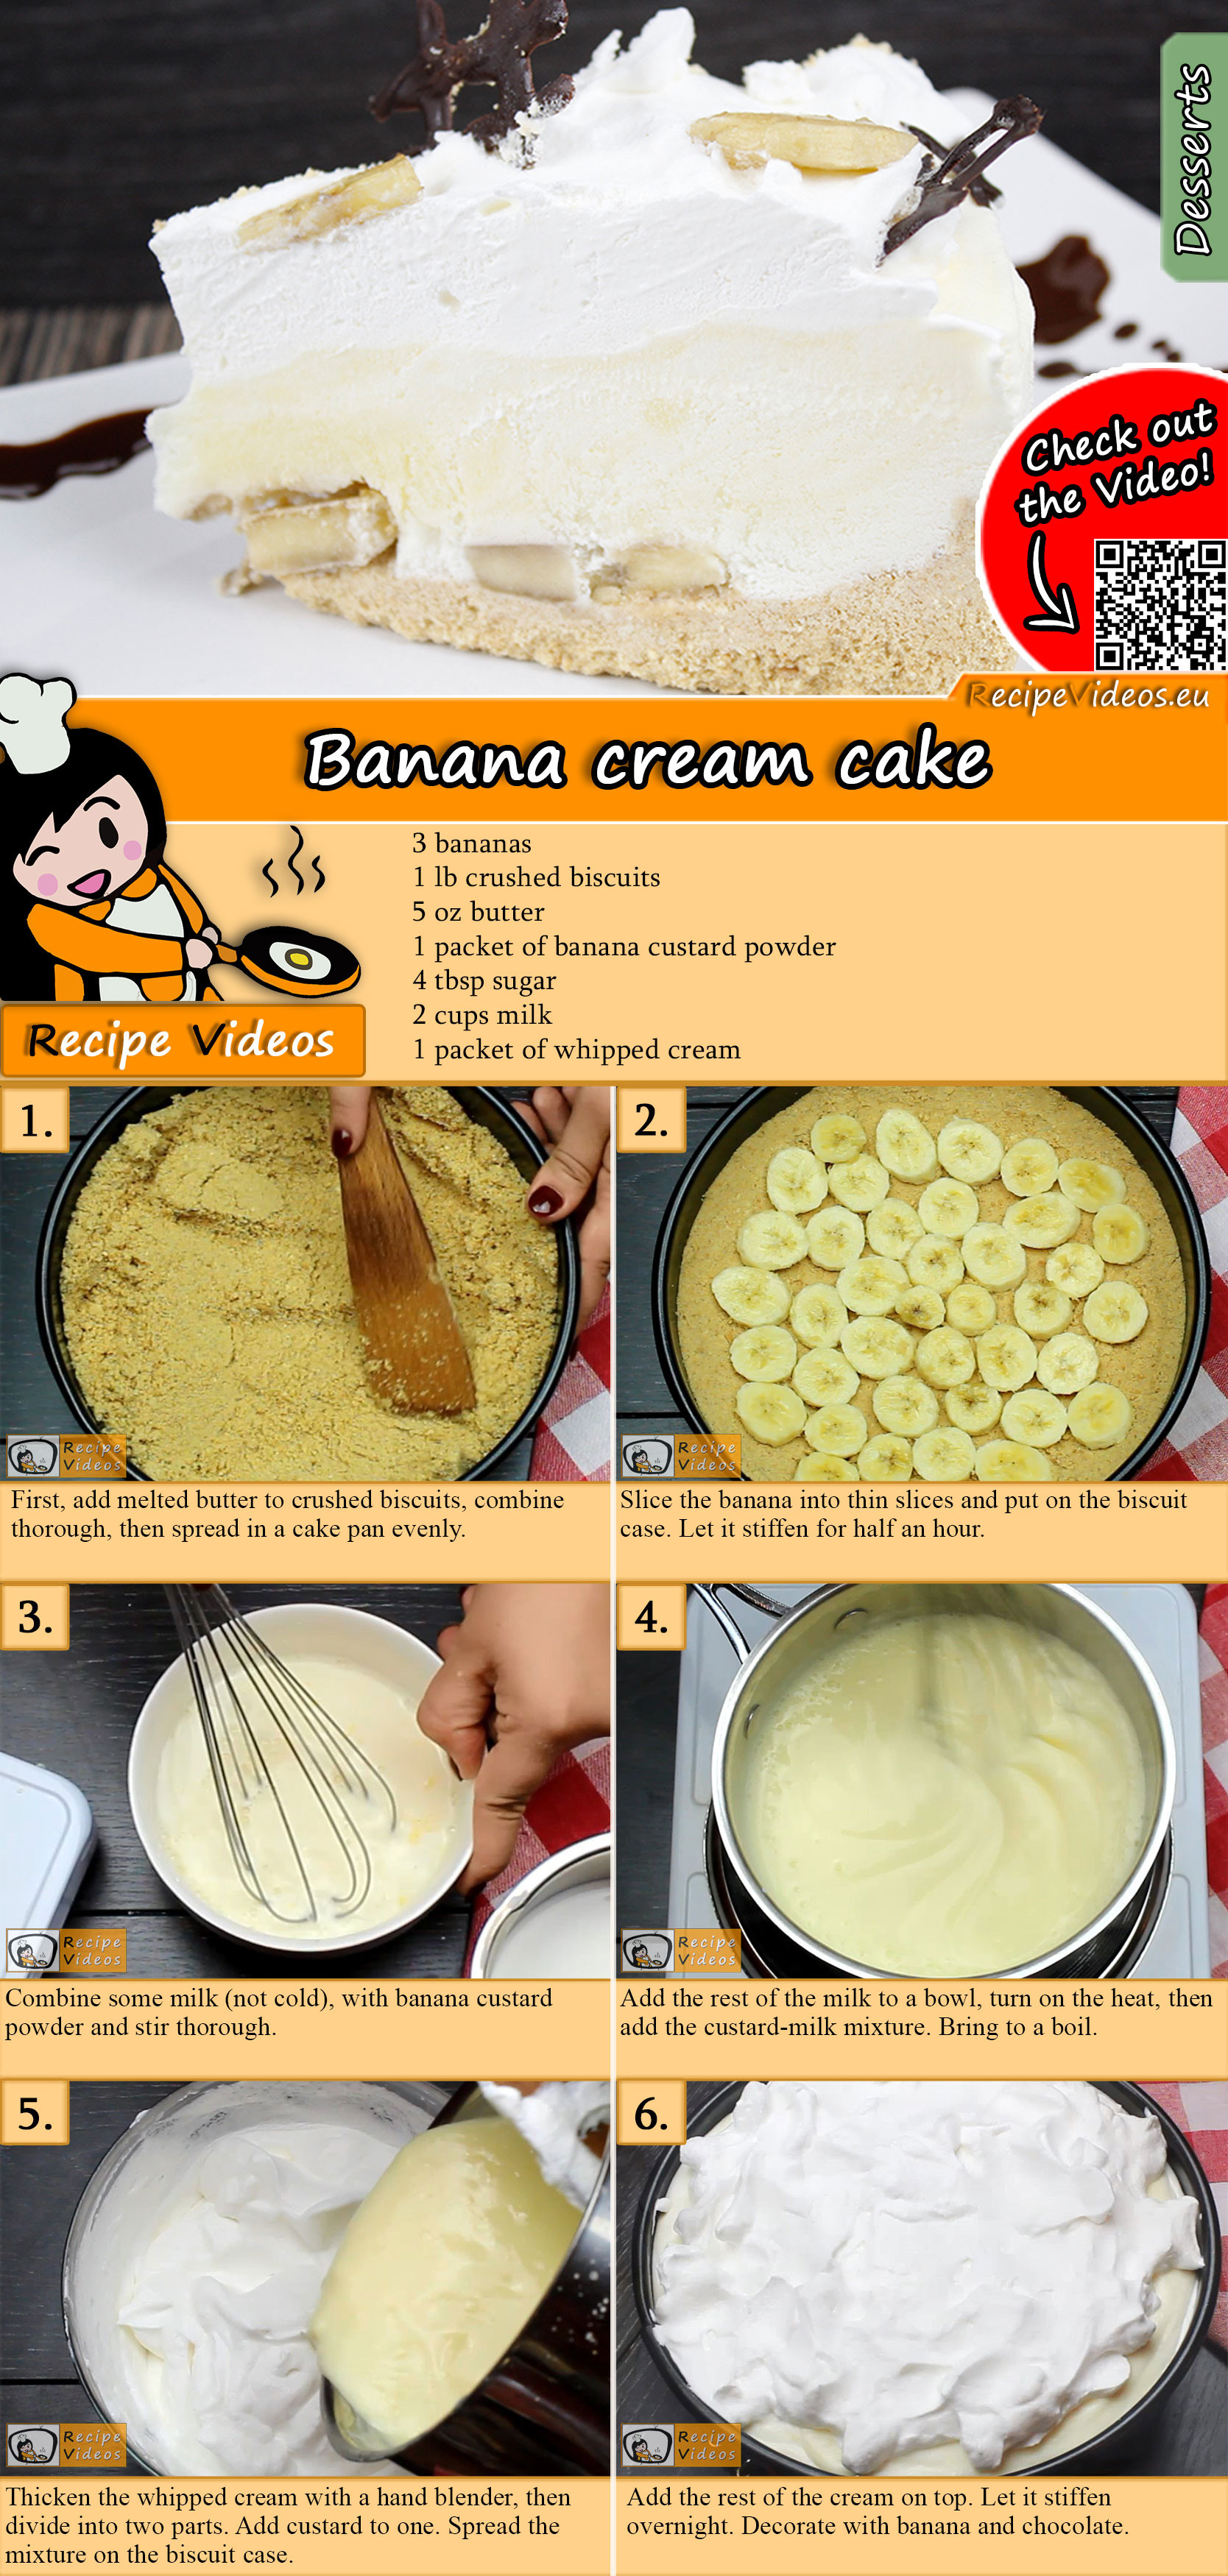 Banana cream cake recipe with video